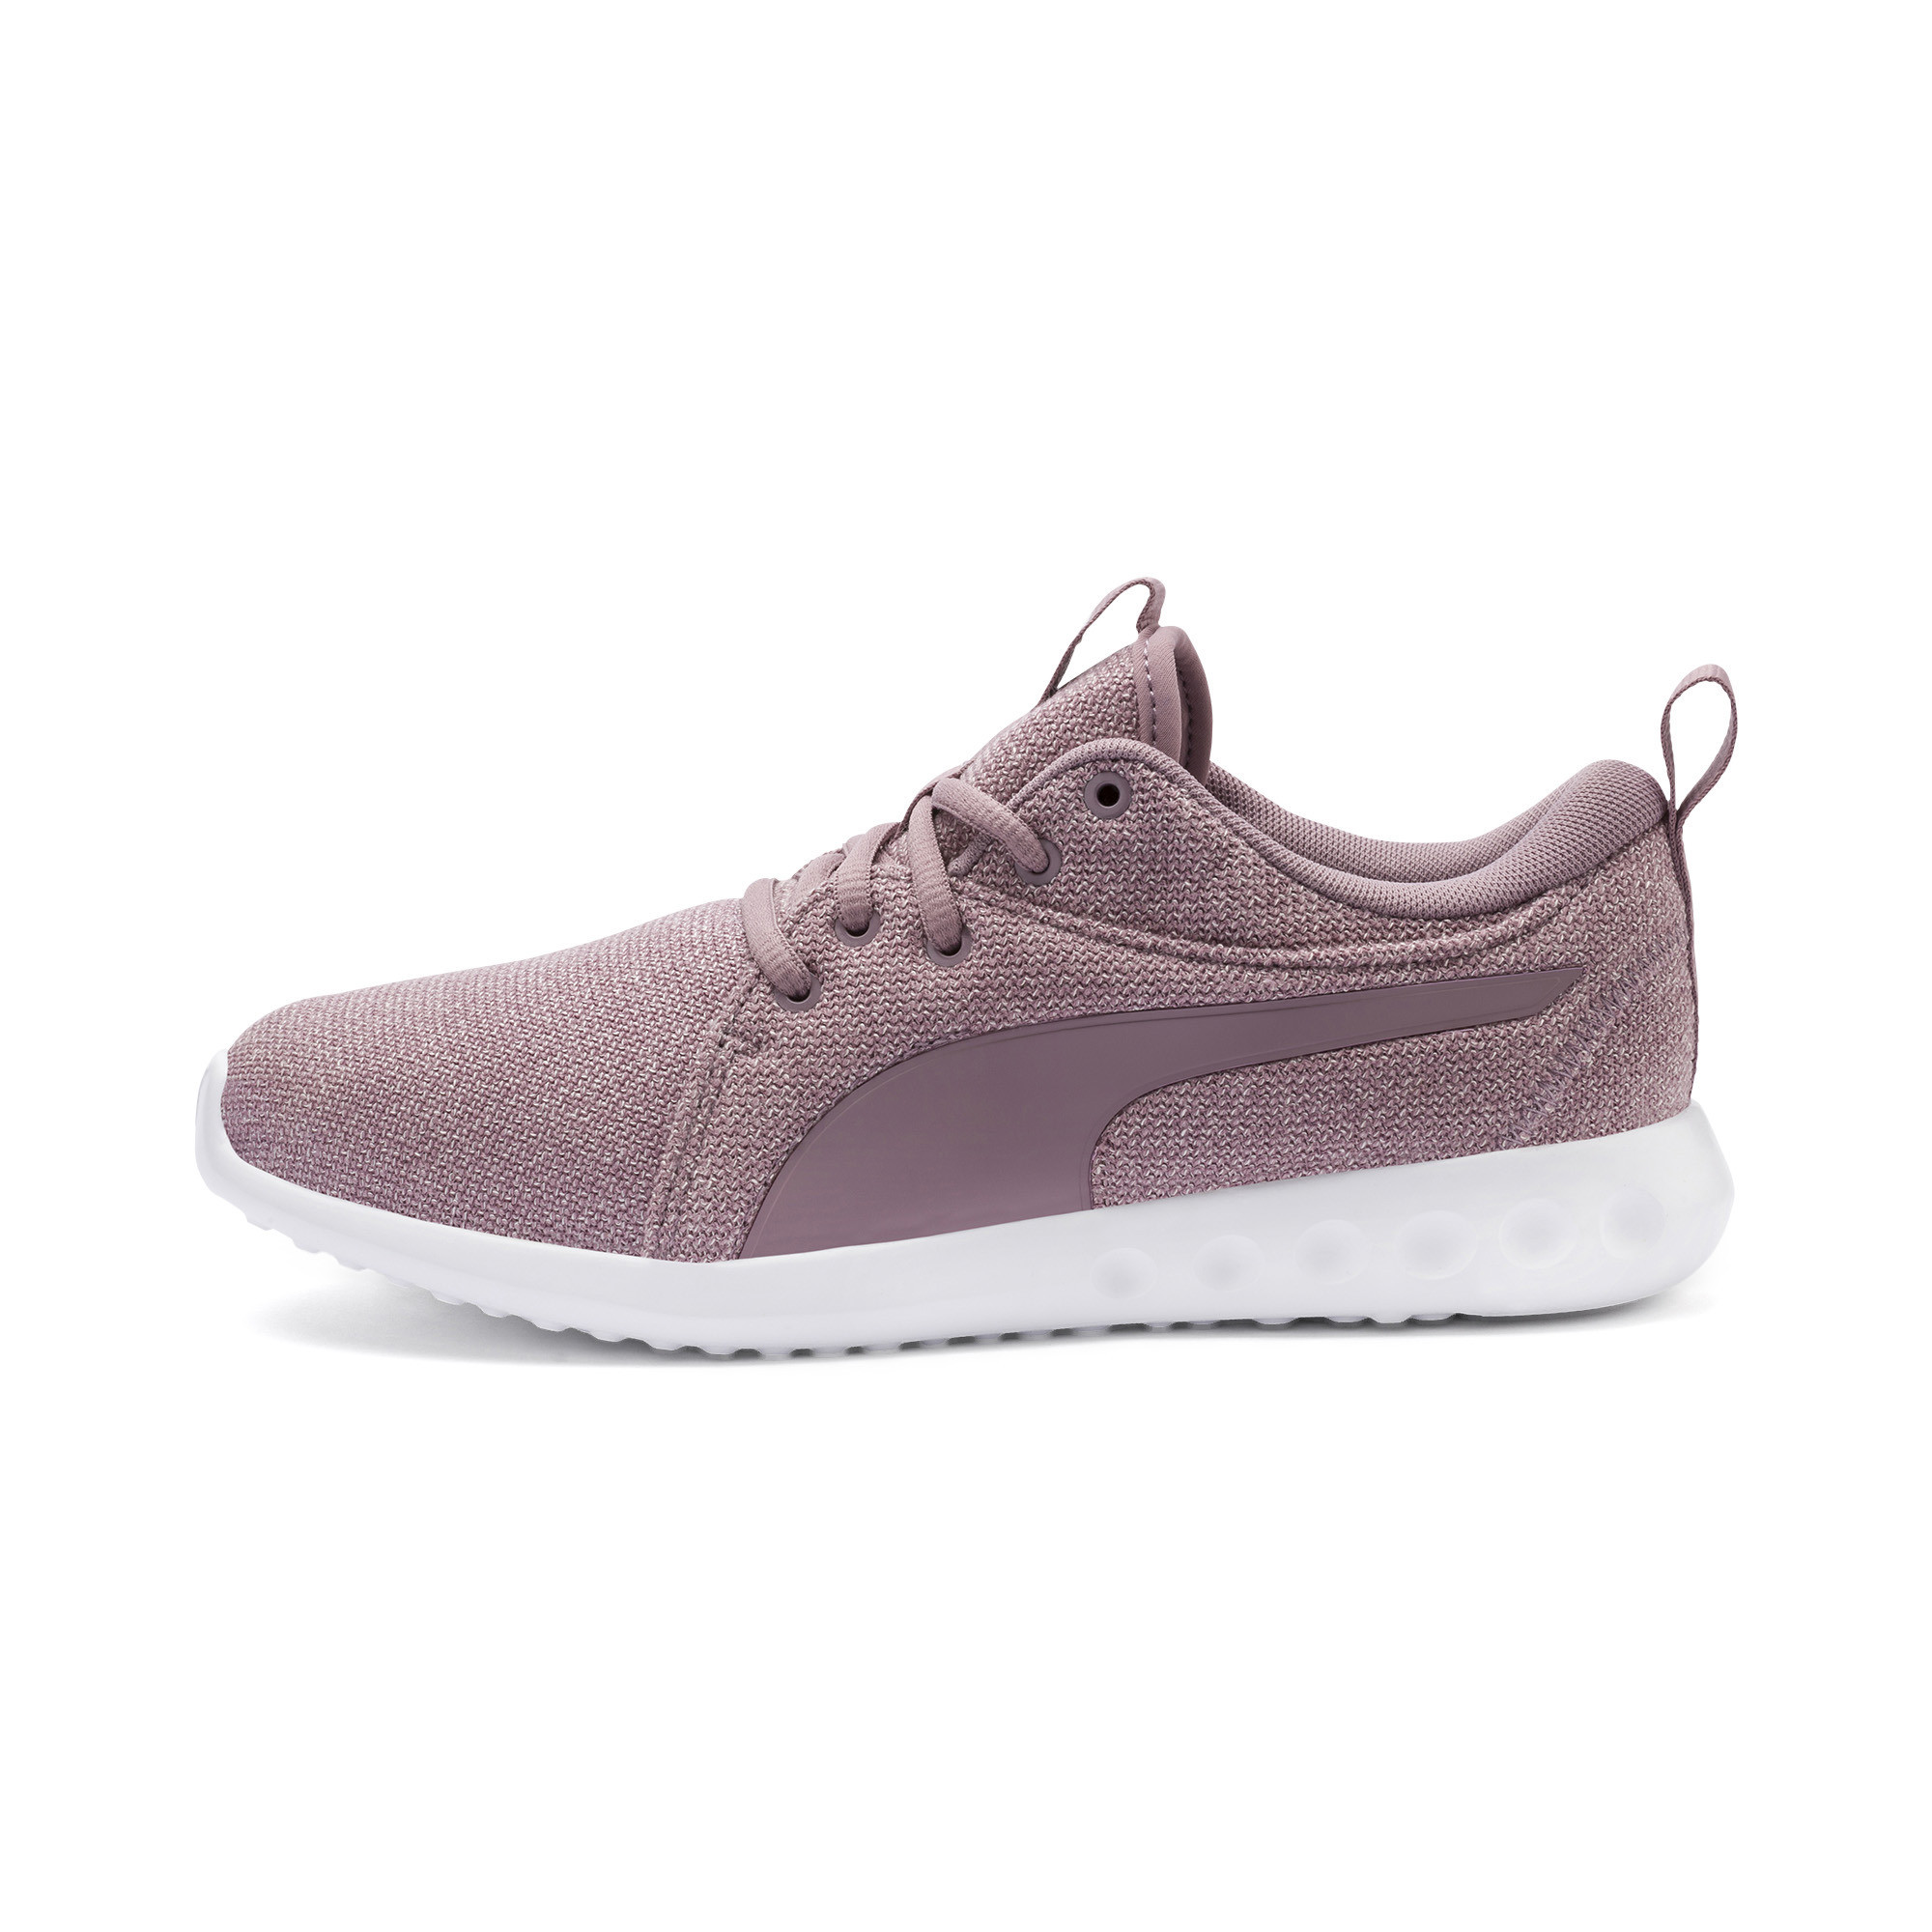 PUMA-Women-039-s-Carson-2-Knit-Running-Shoes thumbnail 14